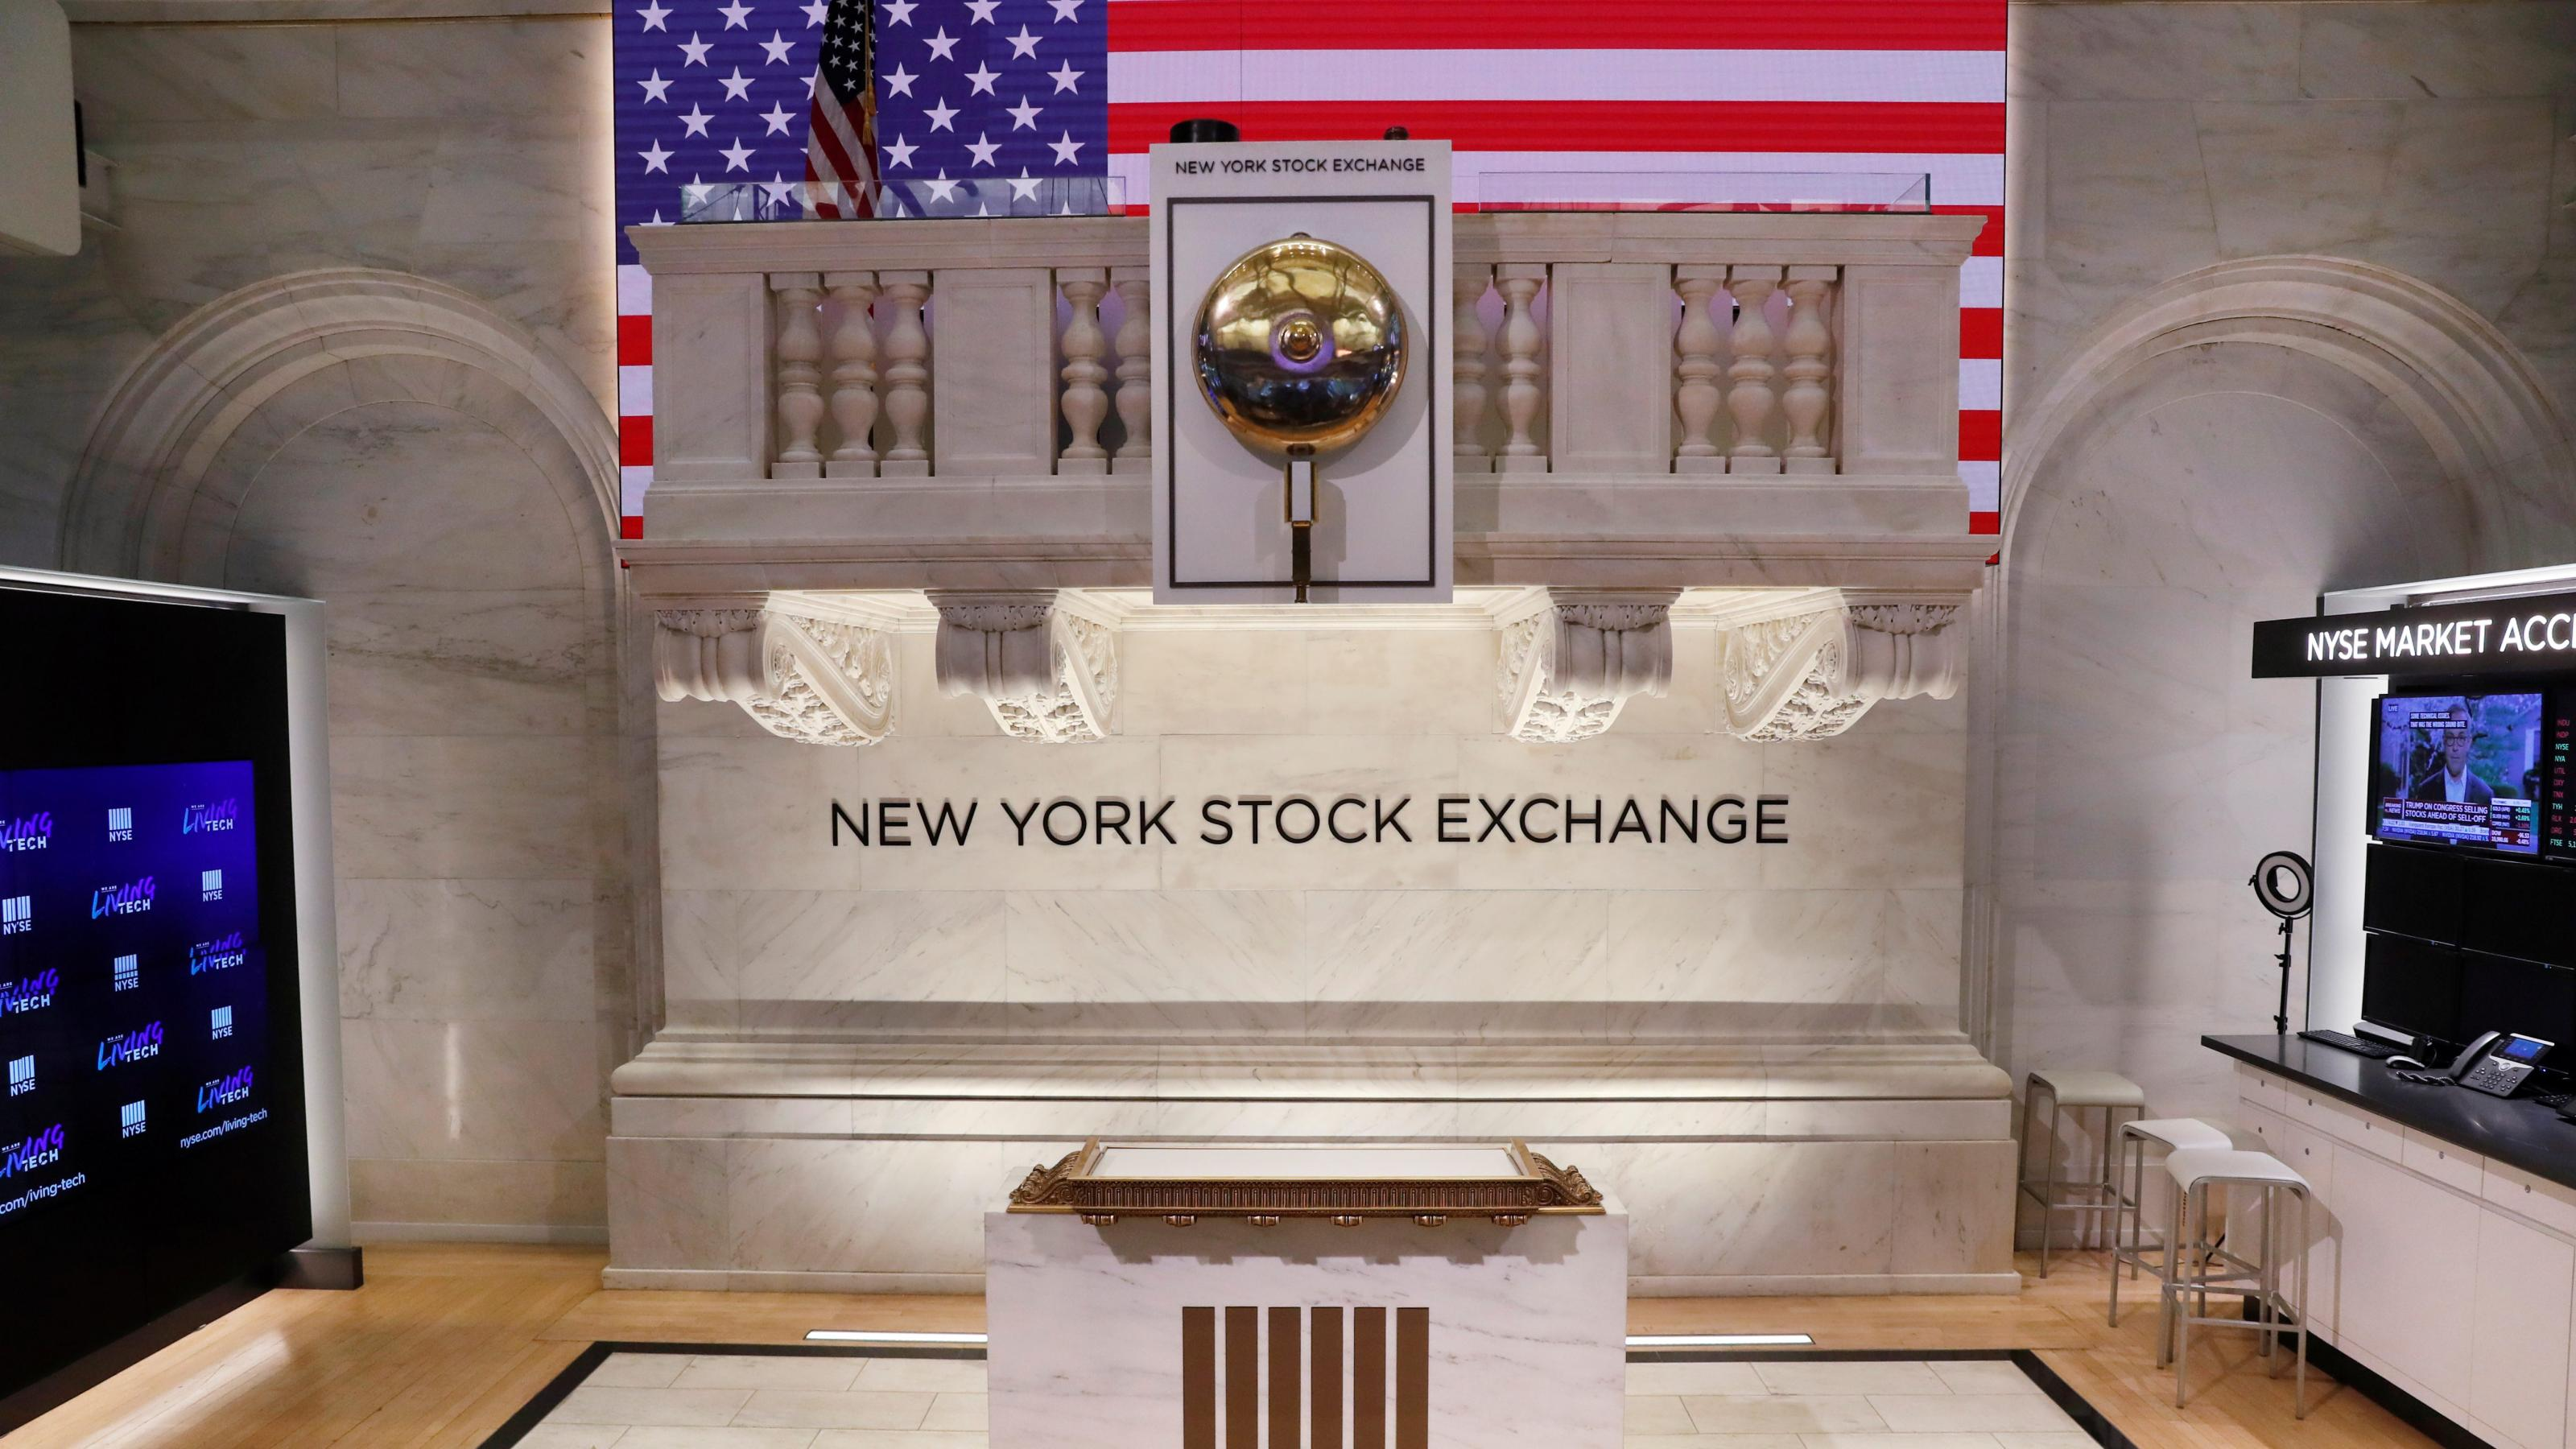 For the first time in 228 years, the New York Stock Exchange will open without its trading floor